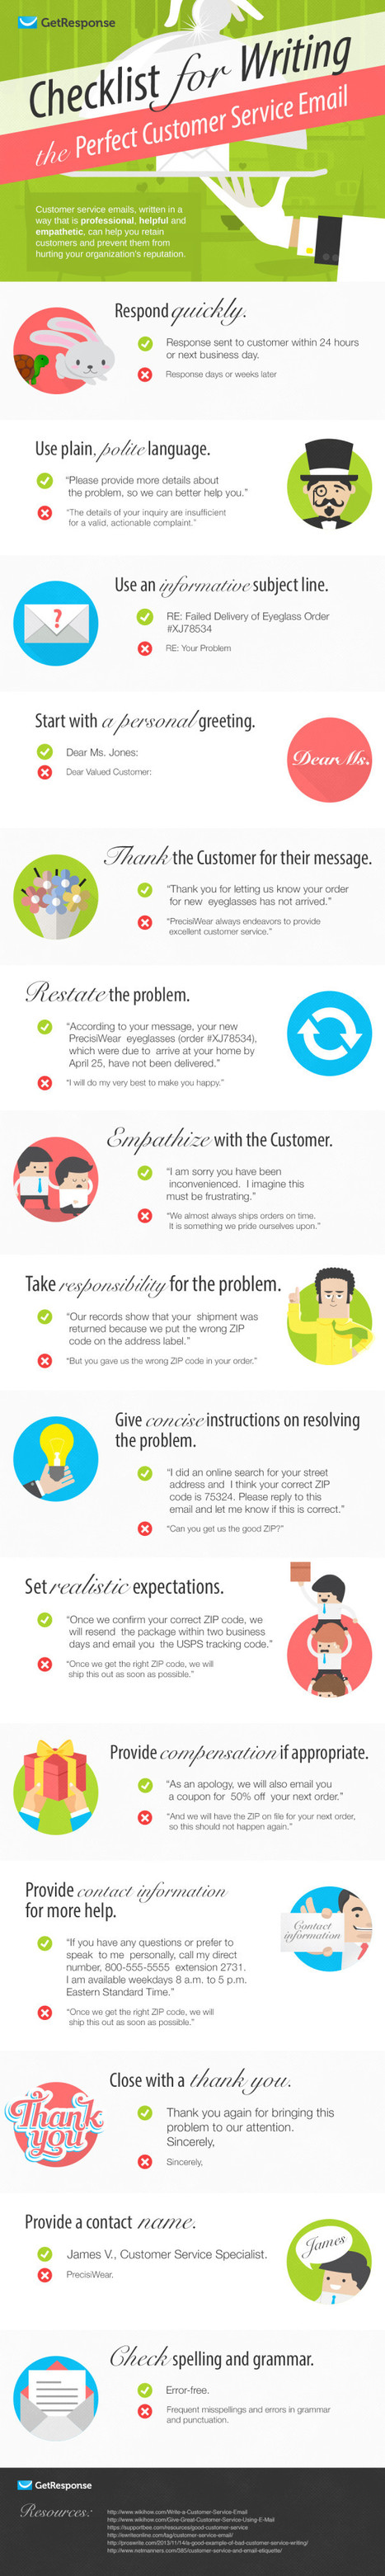 Writing the Perfect Customer Service Email #INFOGRAPHIC | Online Lead Generation Marketing | Scoop.it